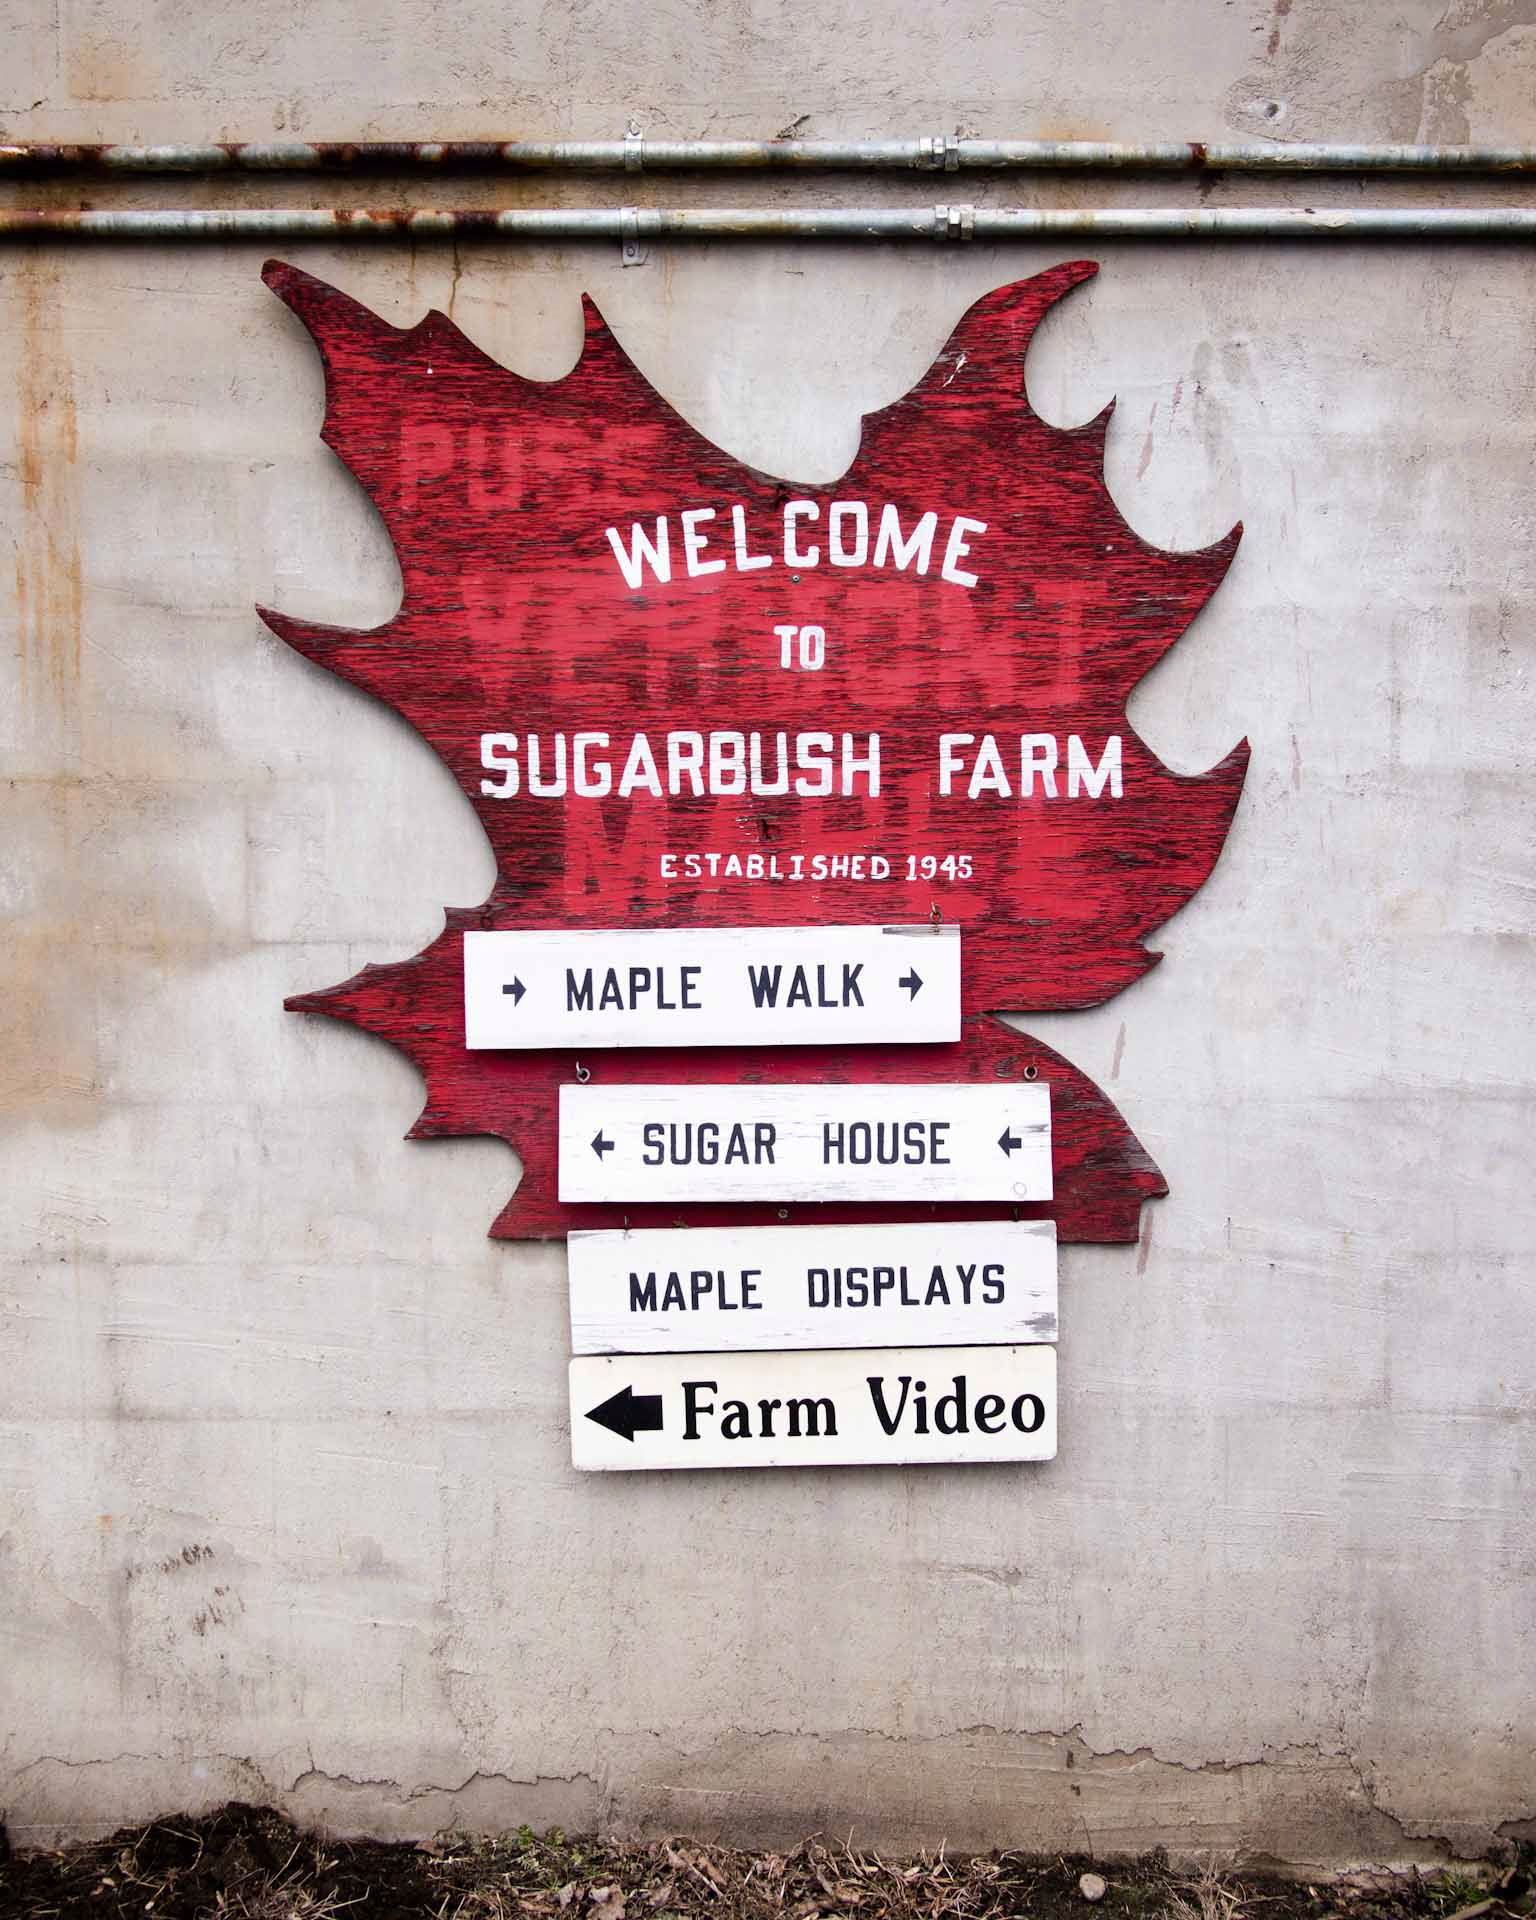 sugarbush-farm-0617-d109181.jpg